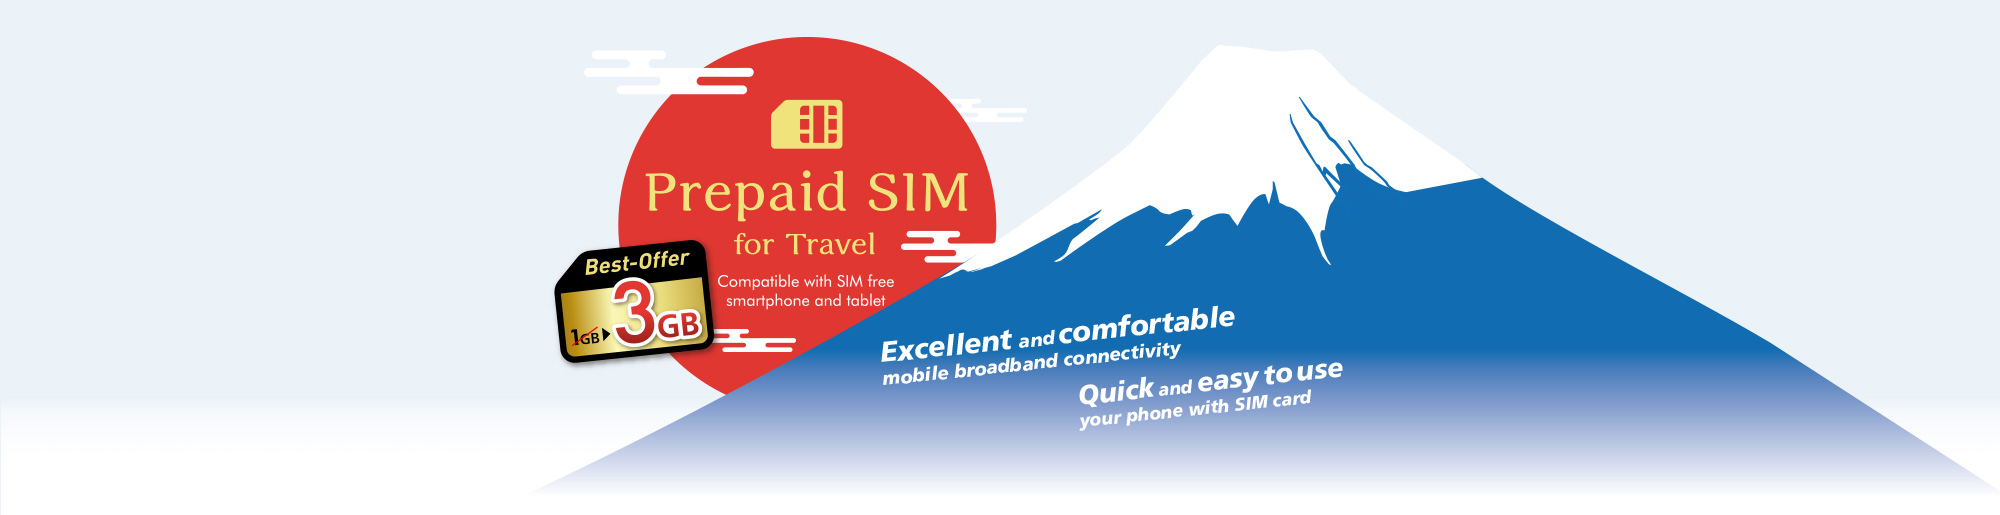 prepaid sim for travel compatible with sim free smartphone and tablet best offer 1gb - Prepaid Data Only Sim Card